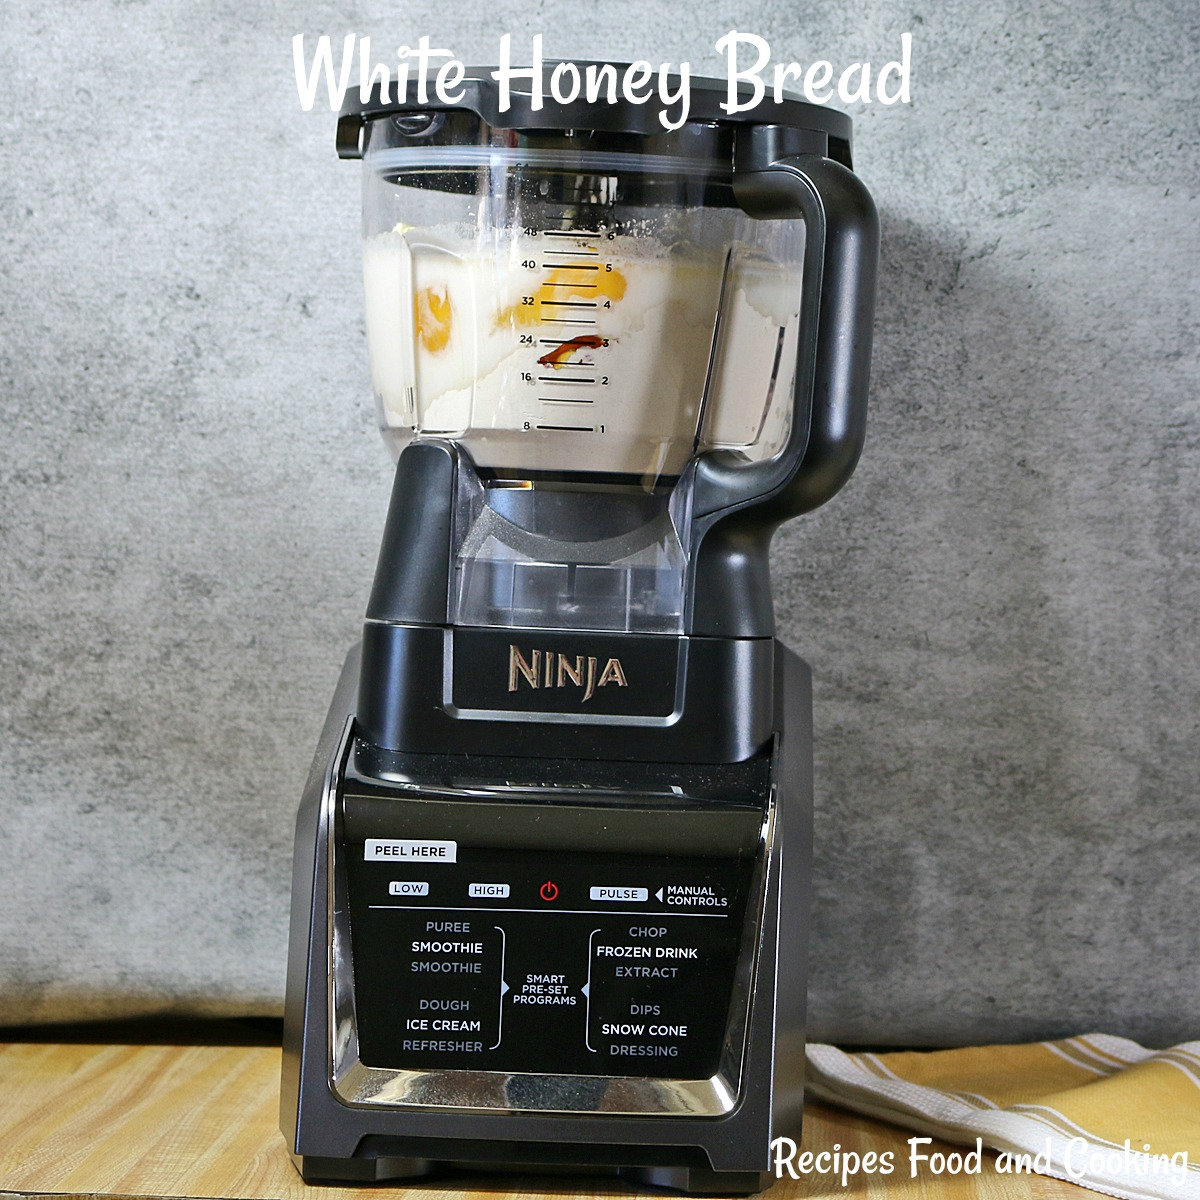 White Honey Bread